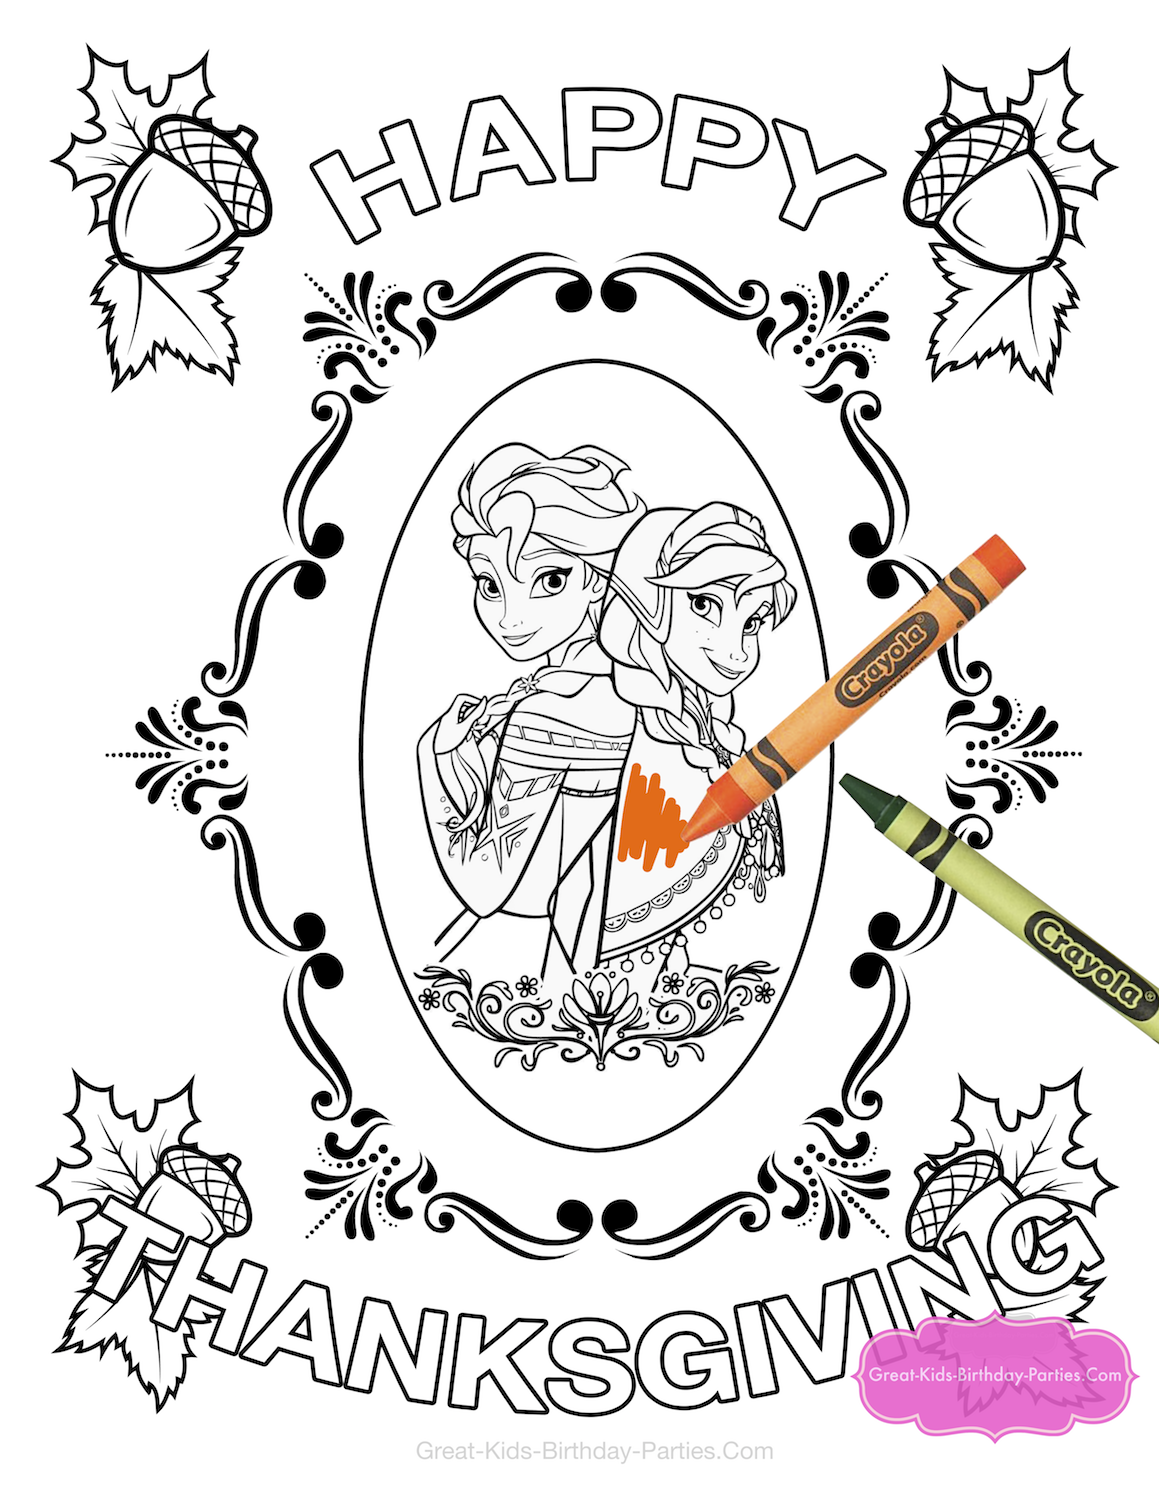 Frozen Thanksgiving coloring page